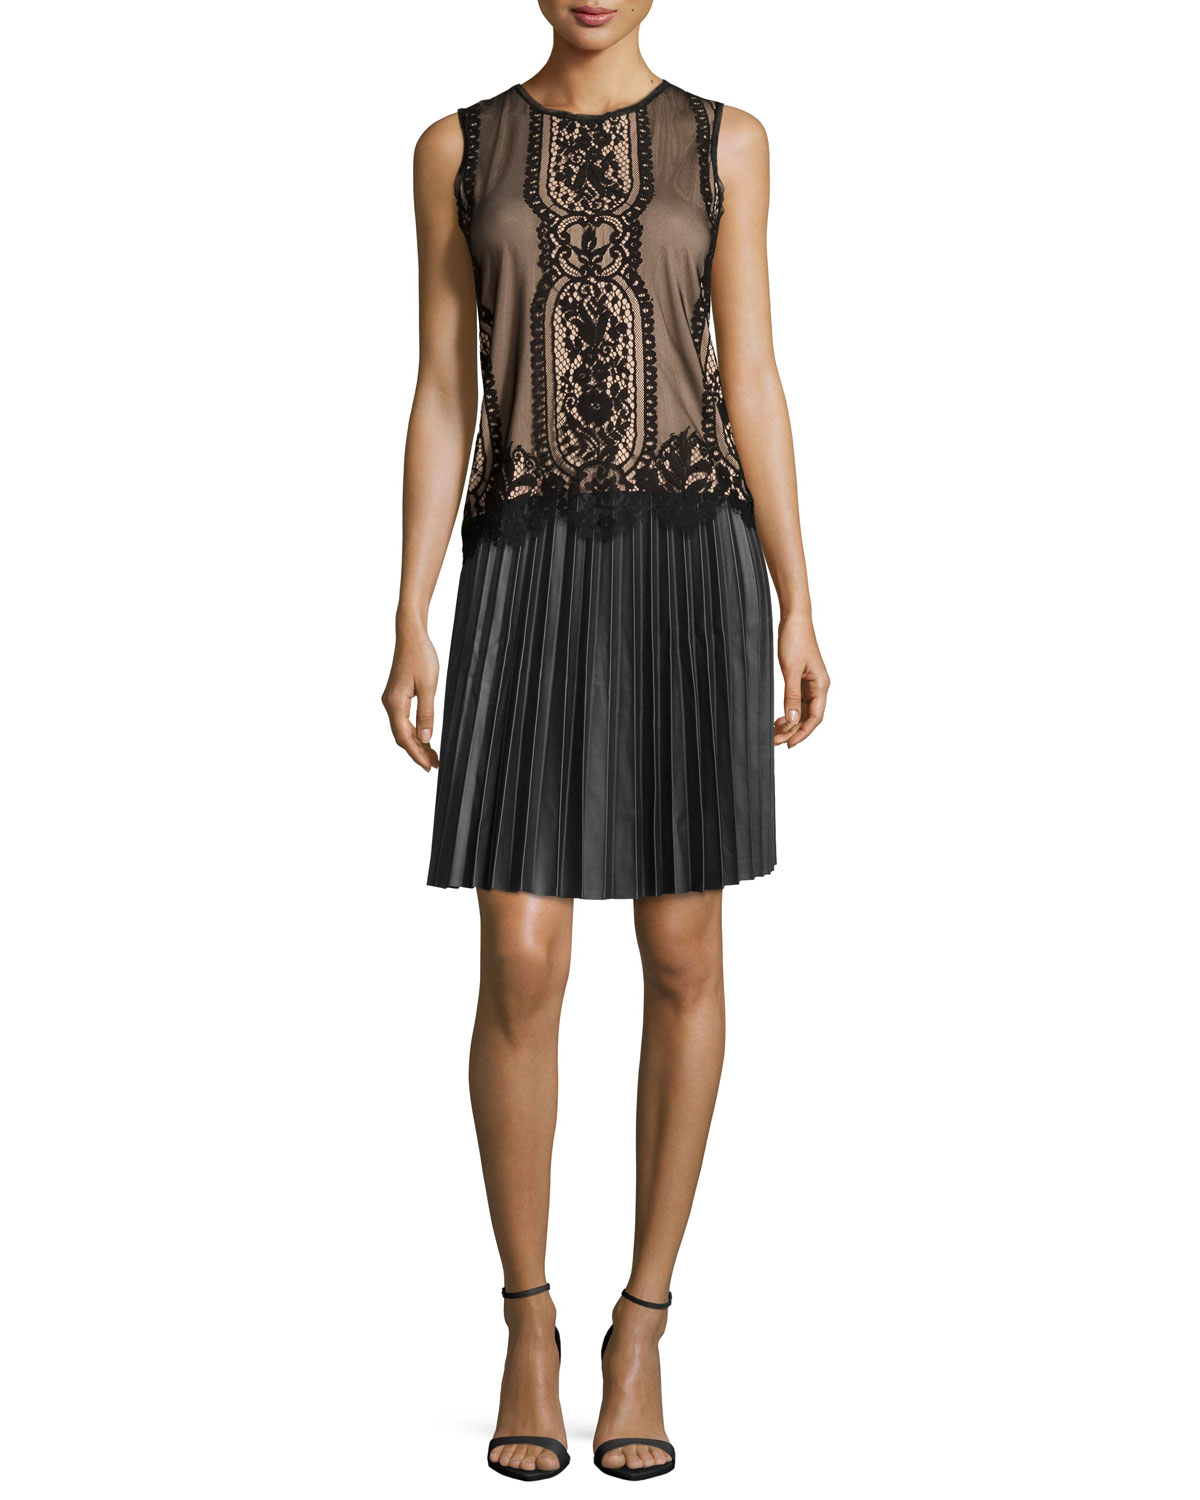 5b4f4515839c1a Lyst - Max Studio Sleeveless Lace Overlay Blouse in Black